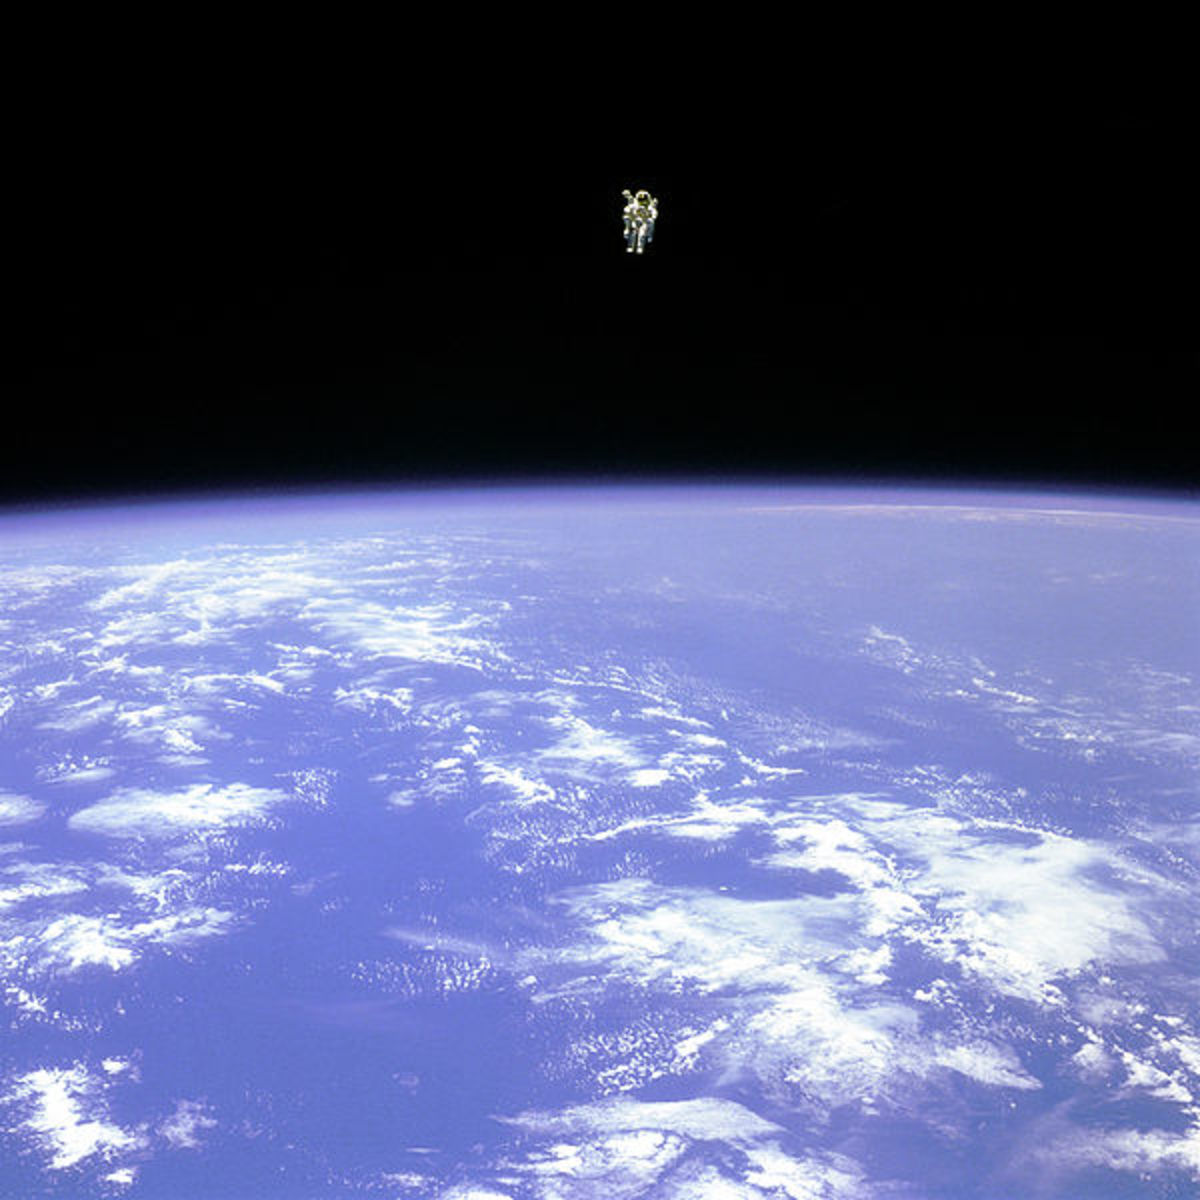 Unidentified flying humanoids appear to maneuver in our atmosphere as easily as astronauts in outer space.